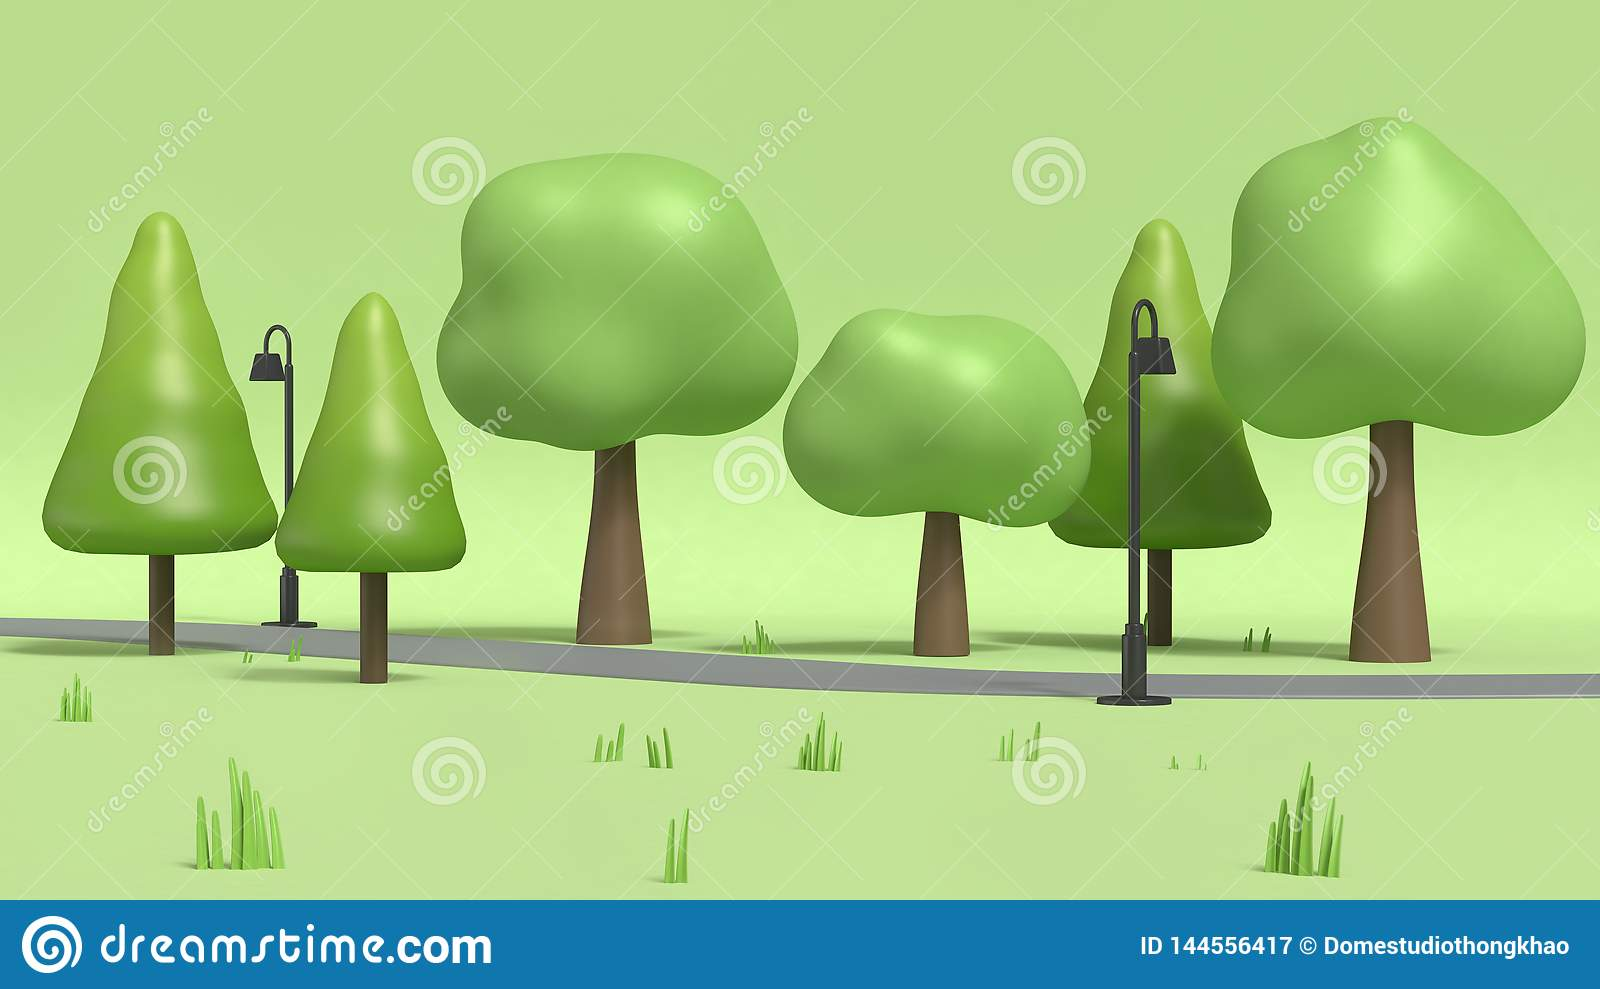 Walkway And Lamp With Many Trees In Green Parks Cartoon Style Low Poly 3d Render Stock Illustration Illustration Of Grass Parkscartoon 144556417 3d cartoon tree models are ready for animation, games and vr / ar projects. https www dreamstime com walkway lamp many trees green parks cartoon style low poly d rendering walkway lamp many trees green parks image144556417